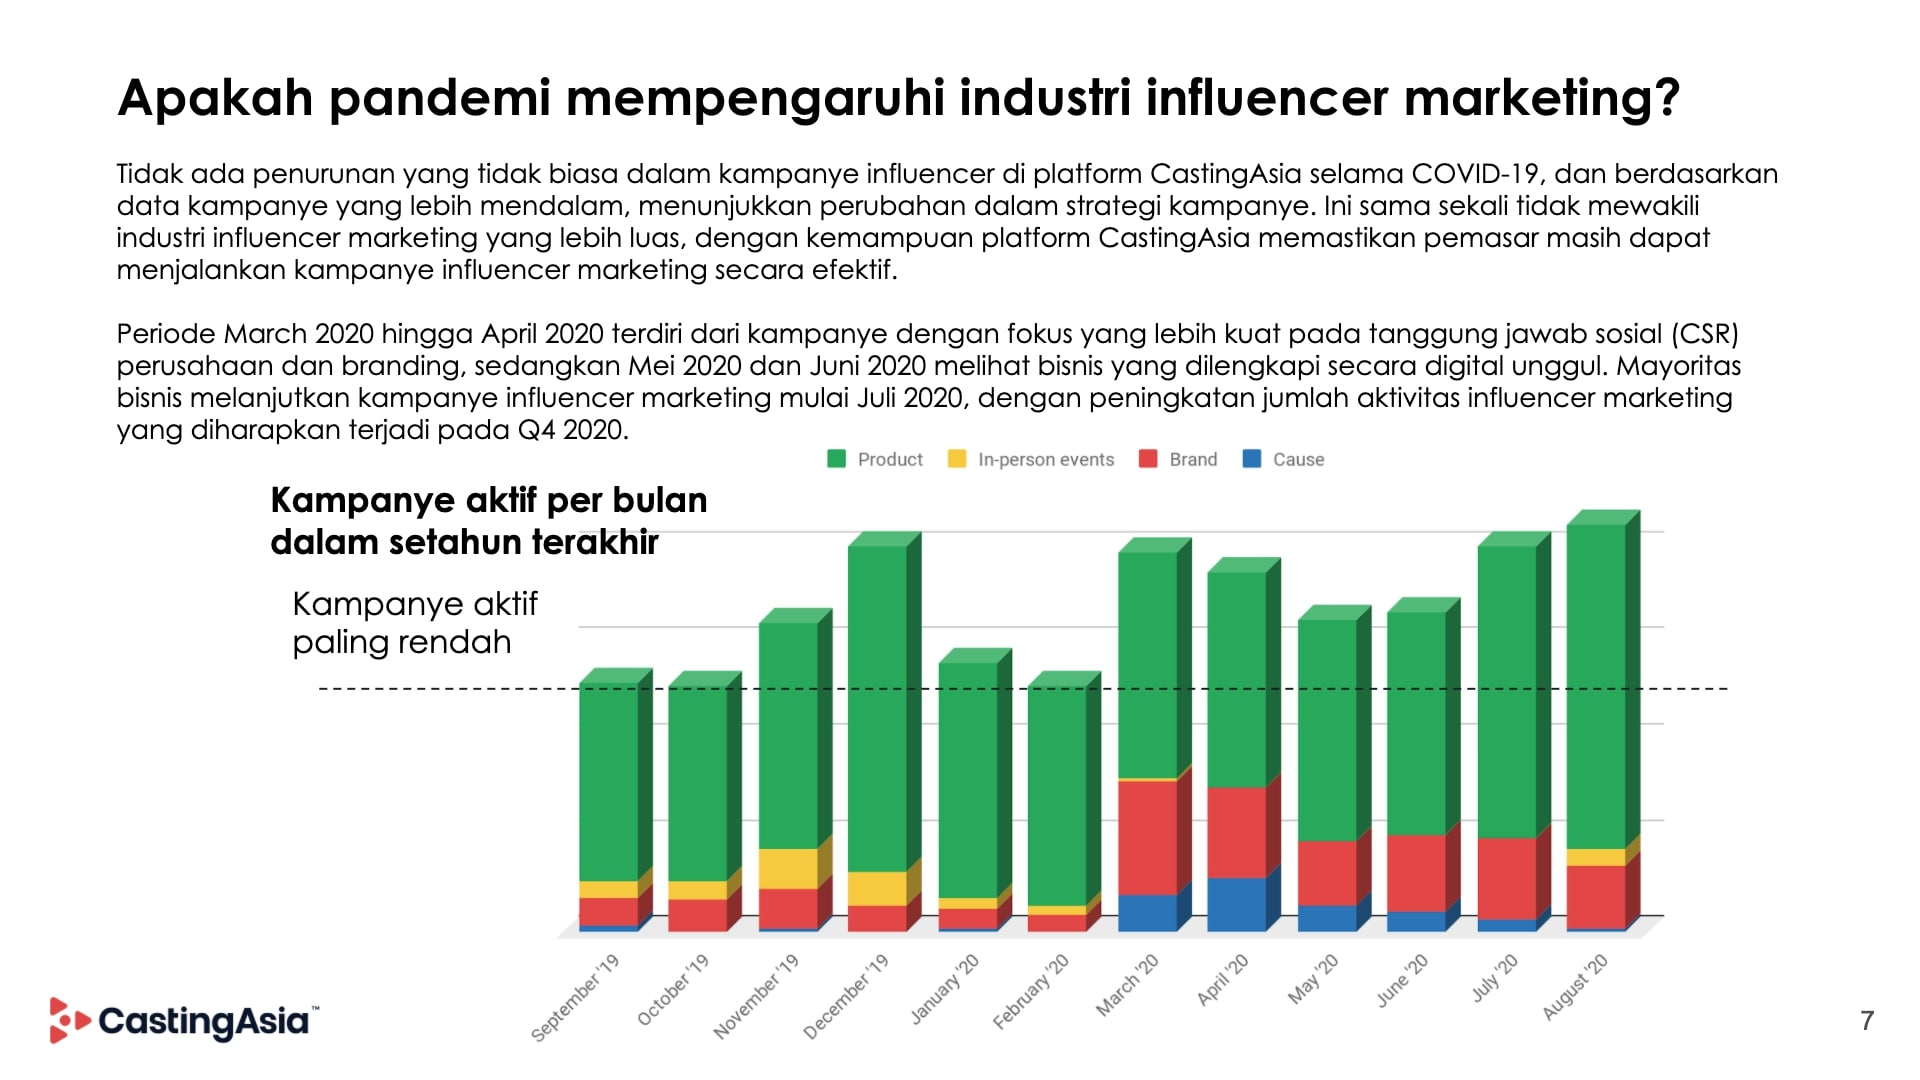 Impact of covid-19 on influencer marketing